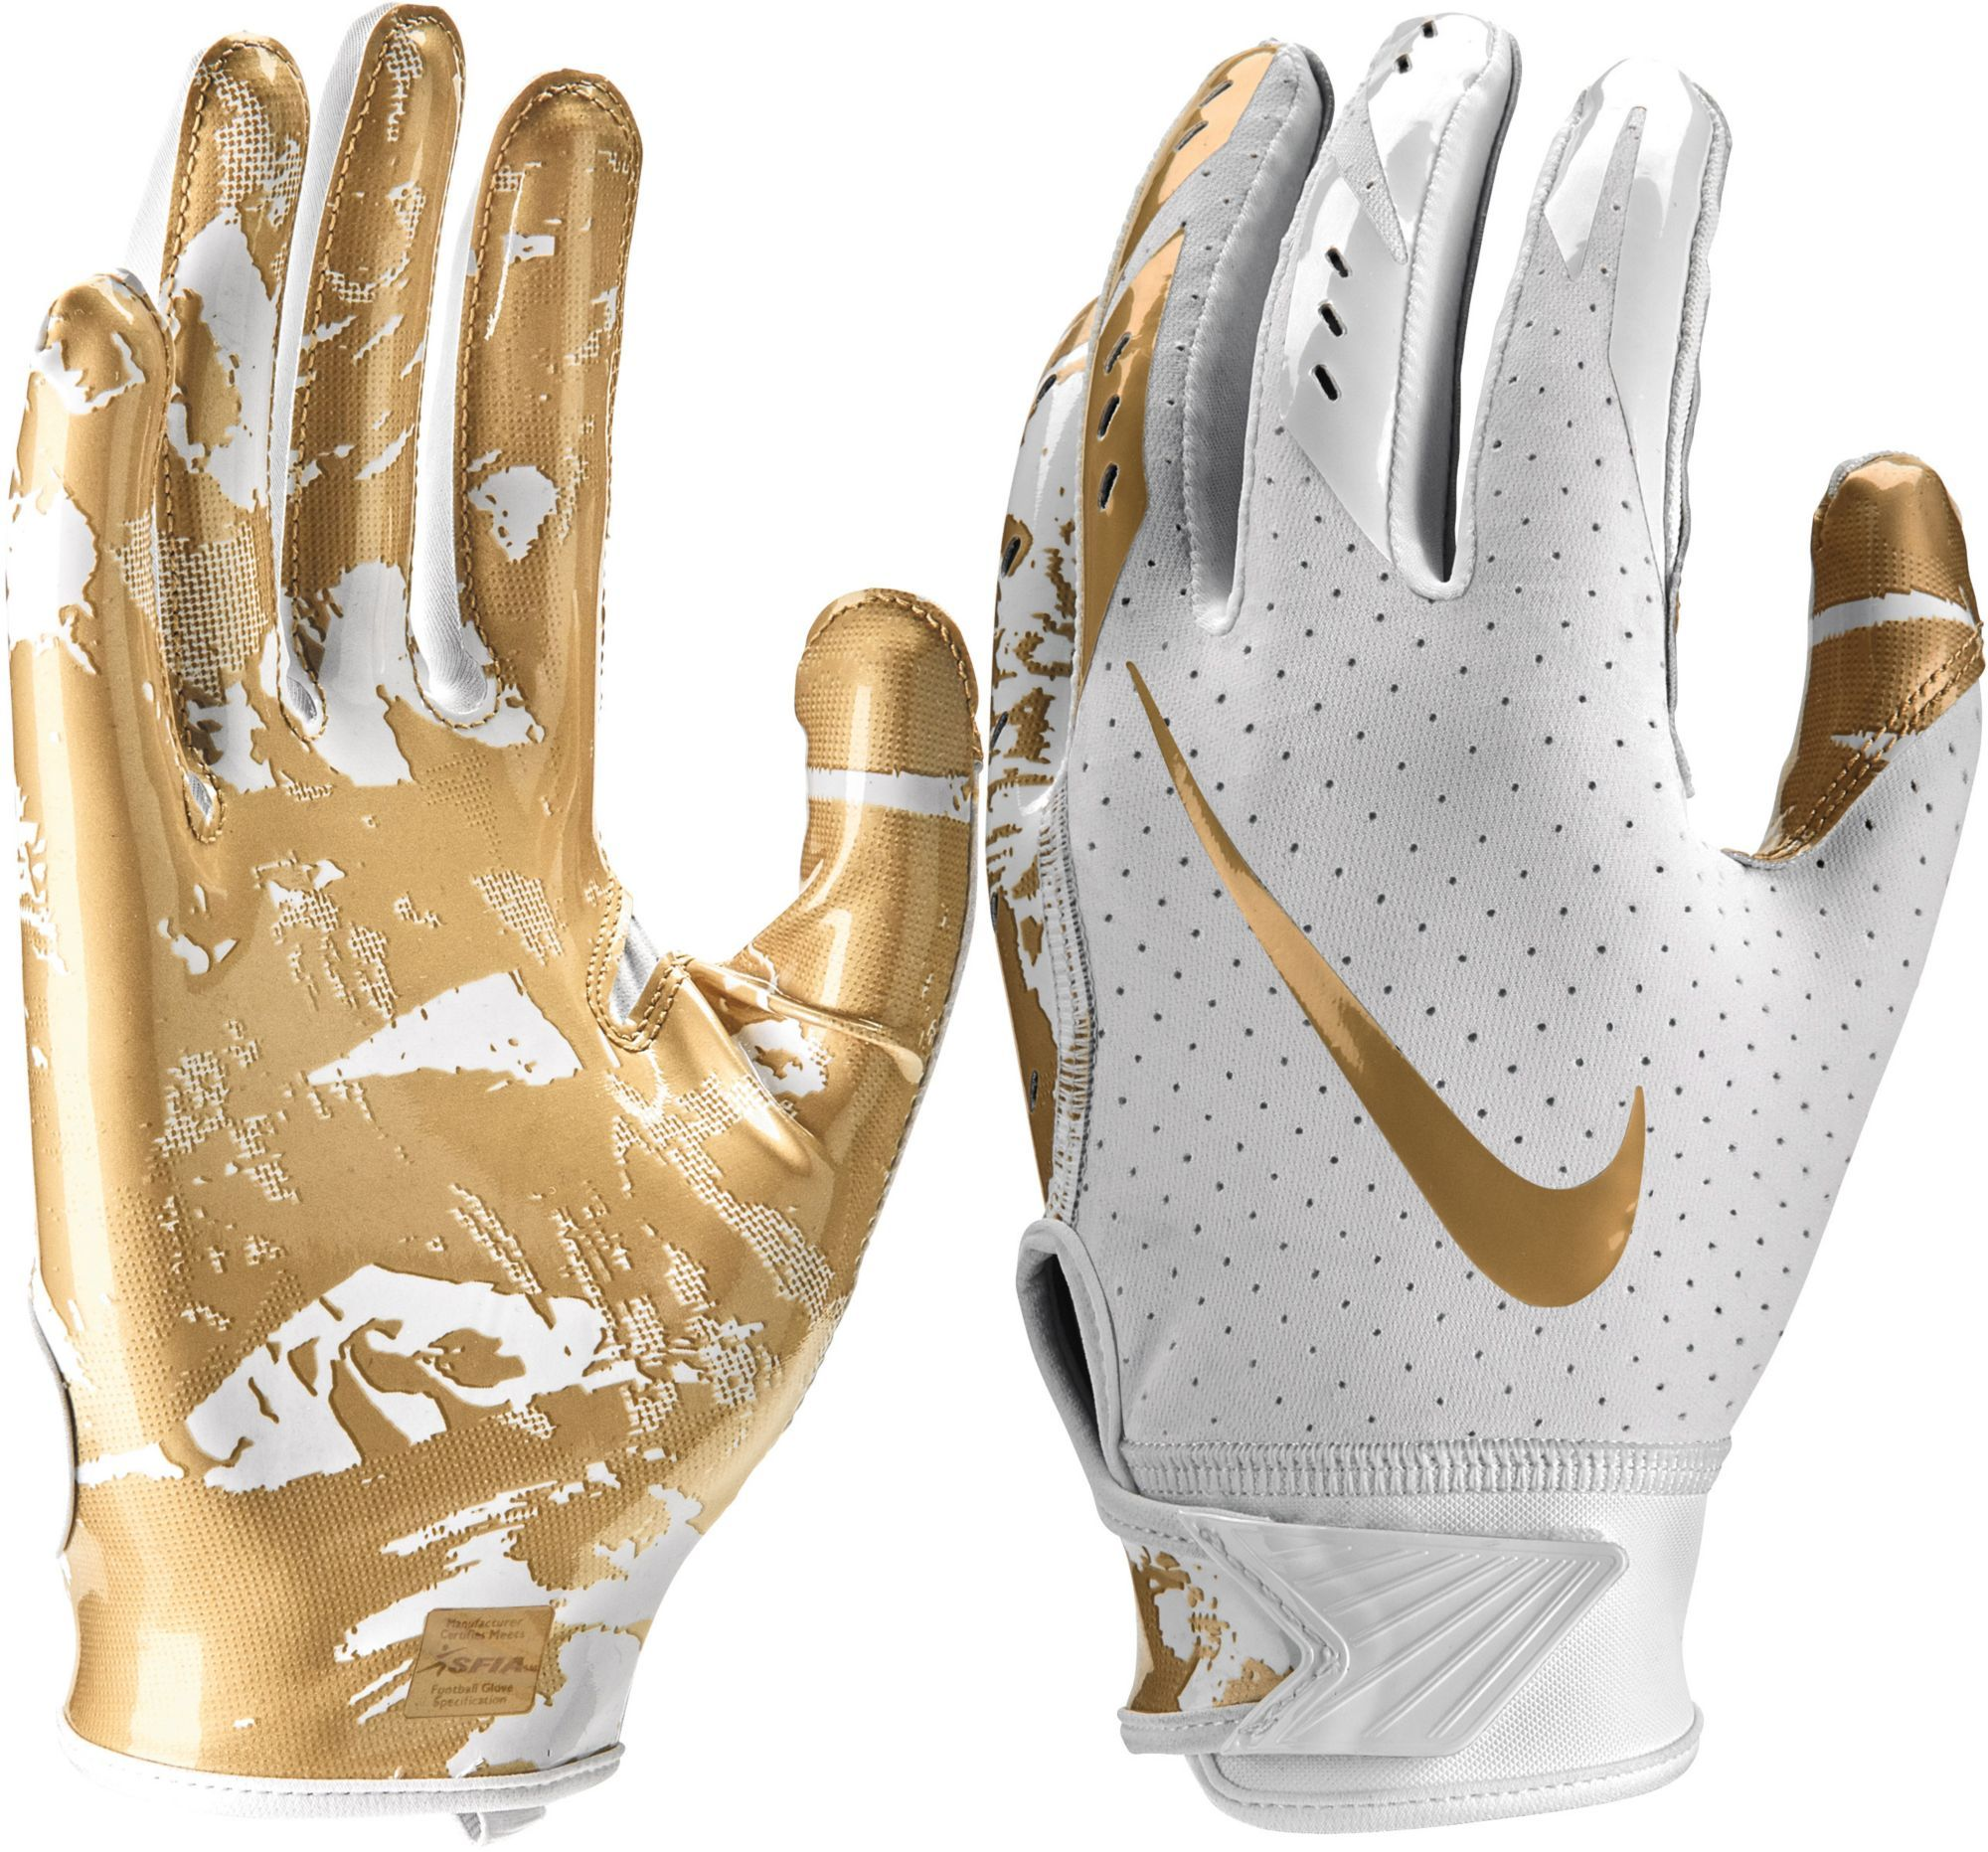 c2cdbd1d816cb Nike Youth Vapor Jet 5.0 Receiver Gloves 2018, White | Products ...